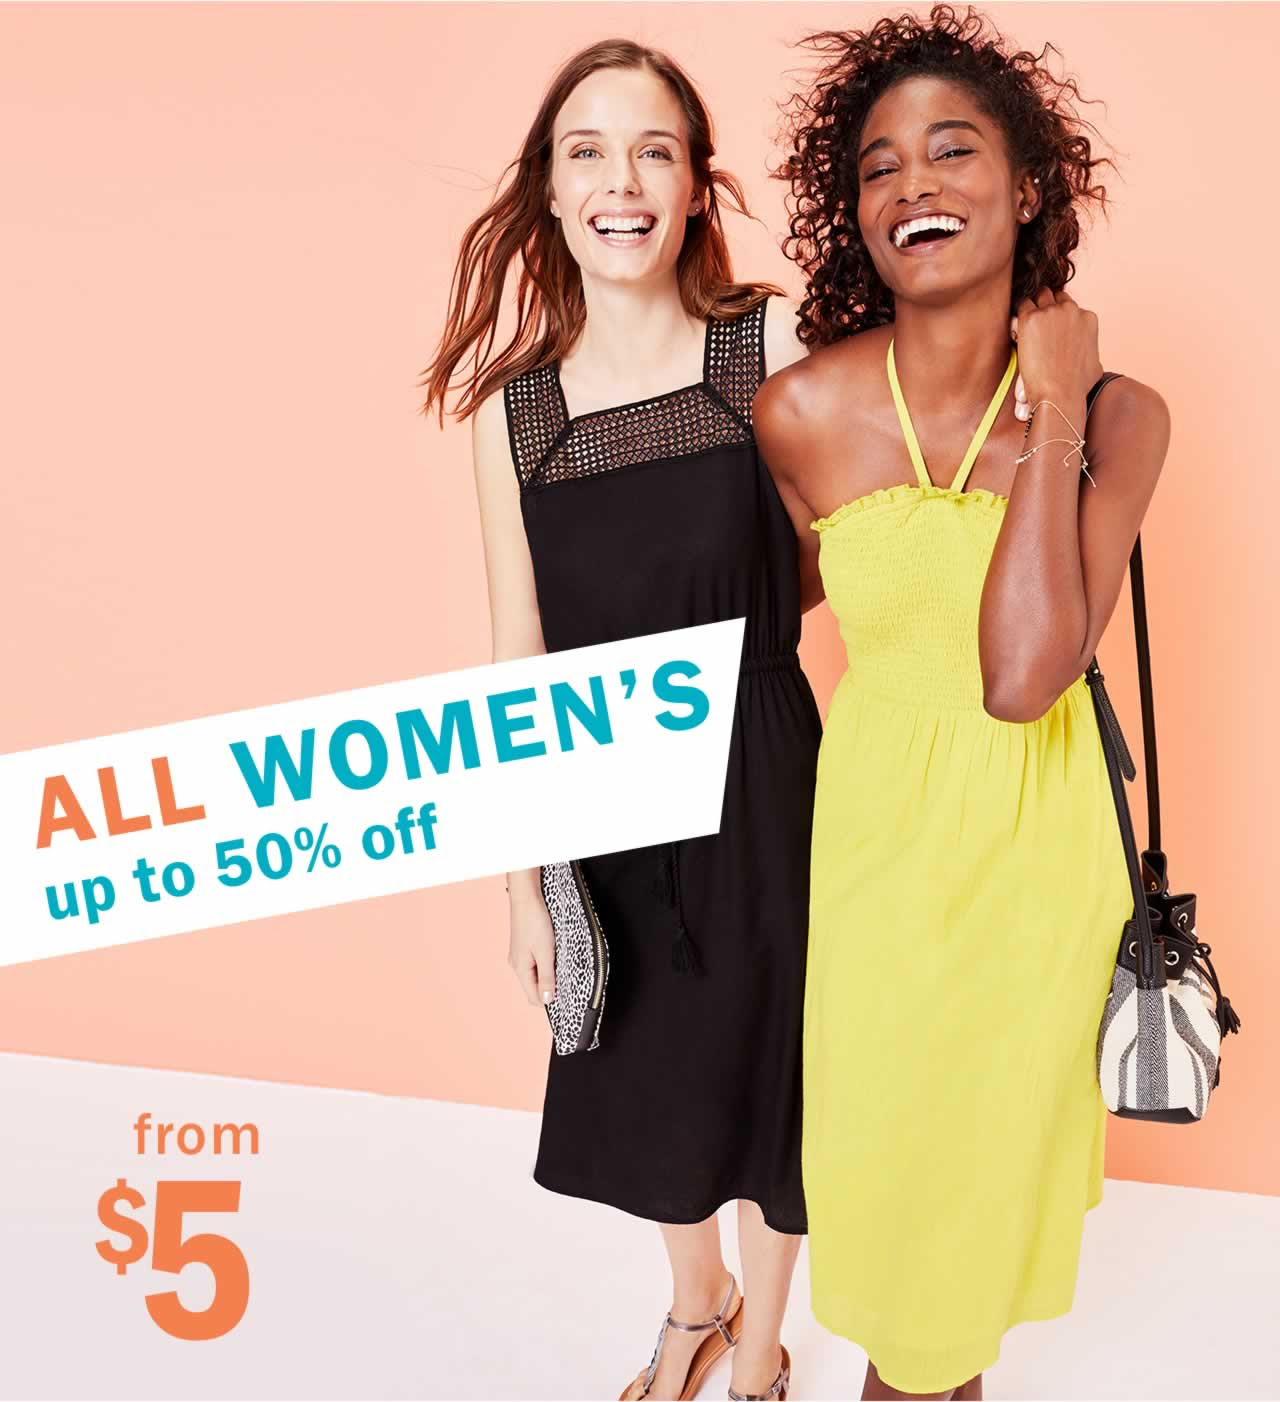 ALL WOMEN'S up to 50% off from $5